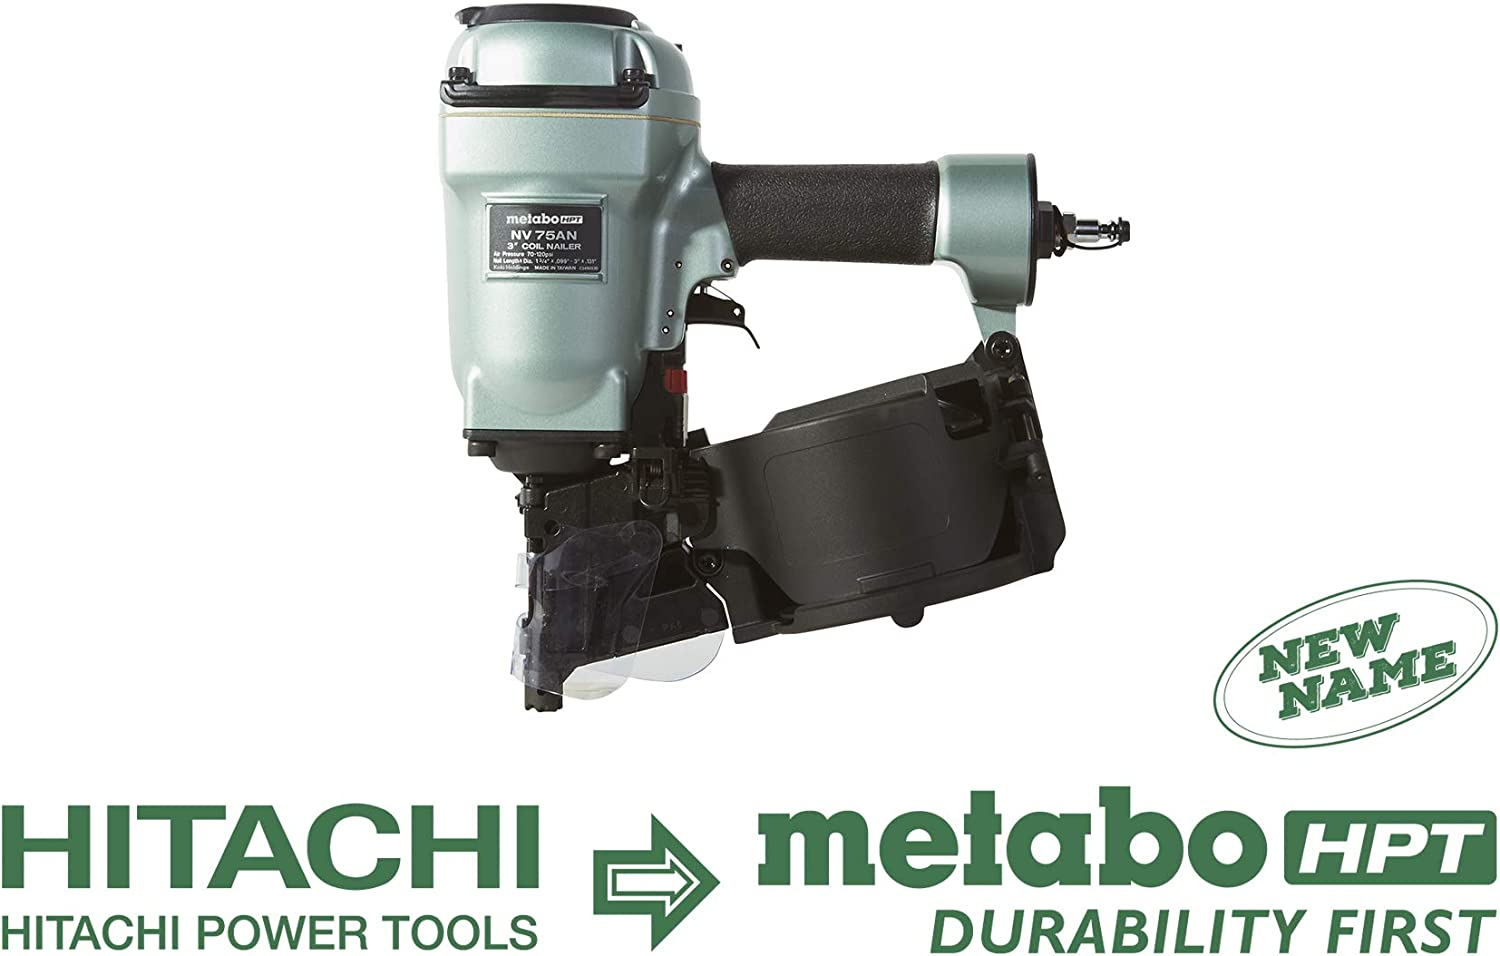 Metabo HPT NV75AN Pneumatic Coil Siding Framing Nailer, 1-3 4-Inch up to 3-Inch Plastic Wire Collated Nails, Contact Bump Trigger Installed, 360 Degree Adjustable Air Deflector